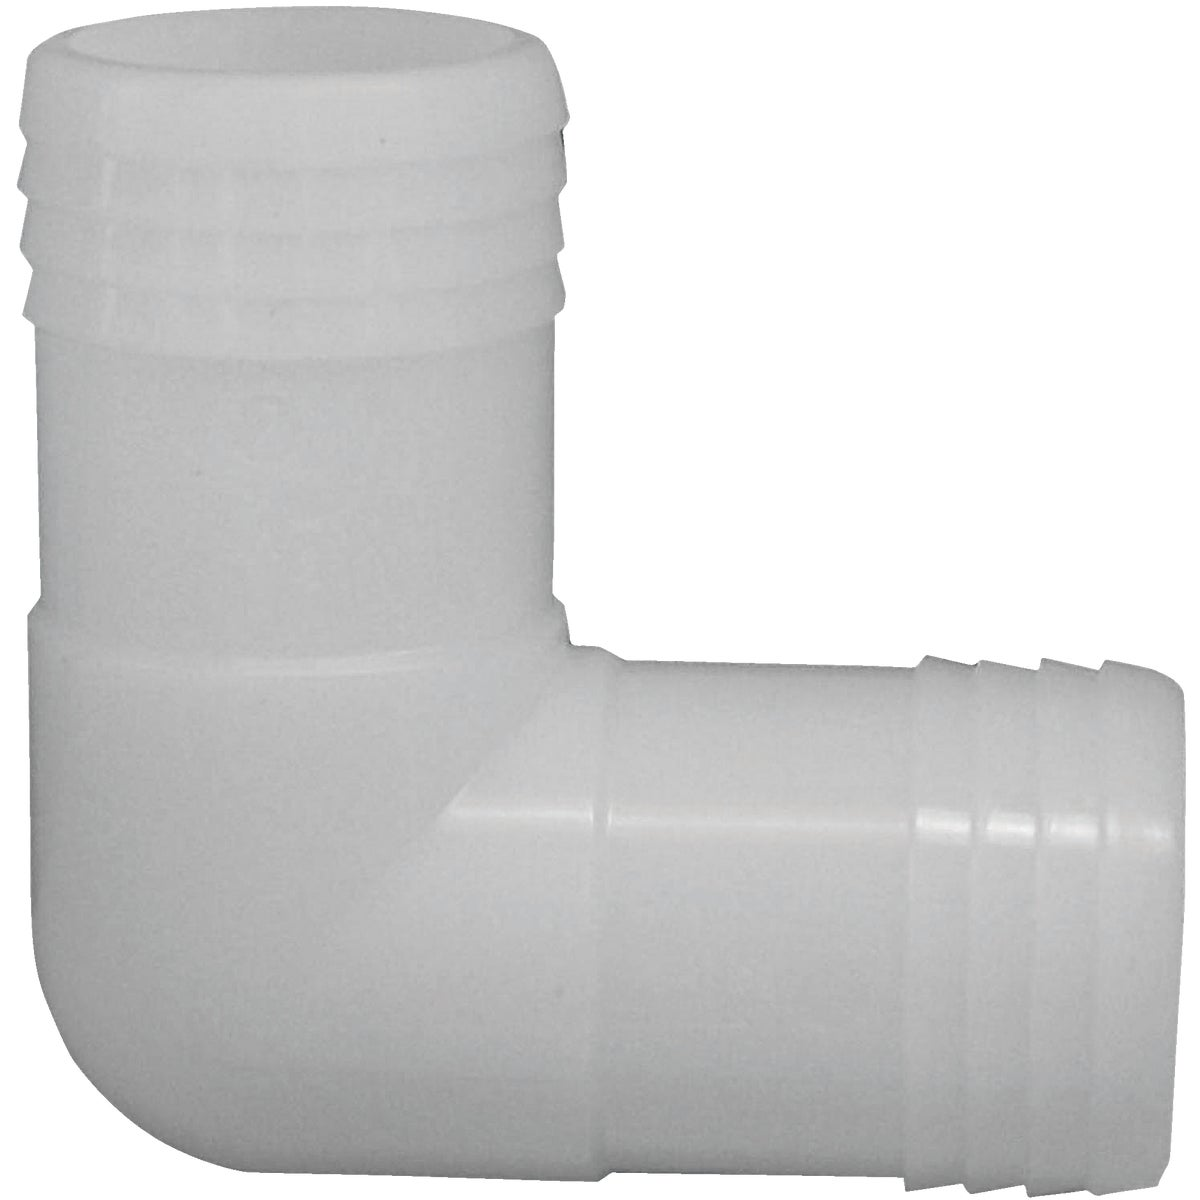 "1-1/2""NYLON INSERT ELBOW - 360715 by Genova Inc"